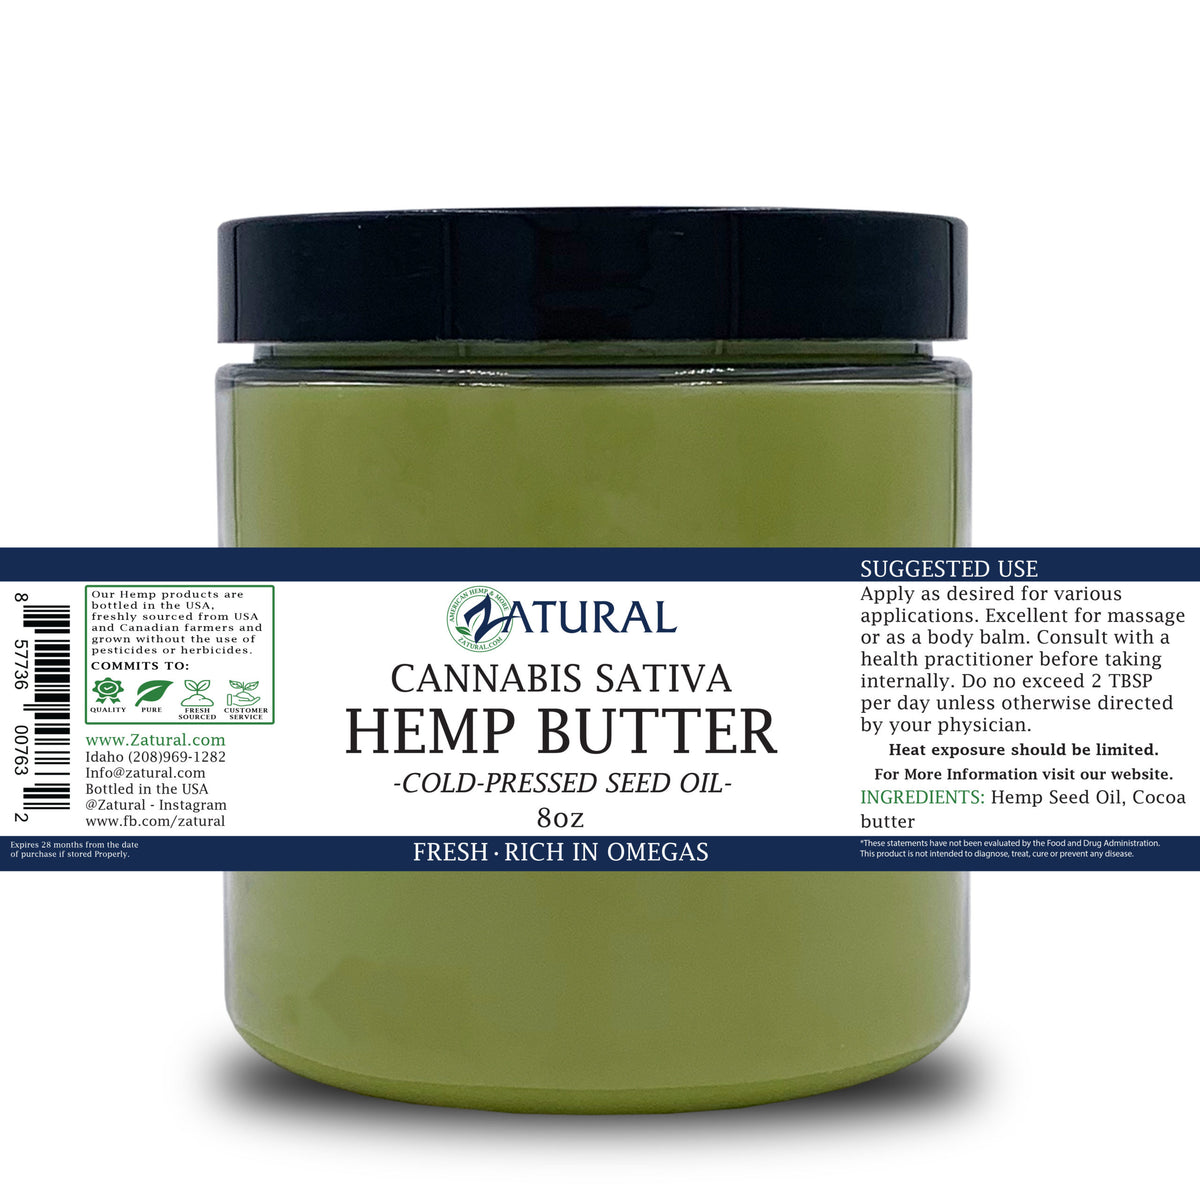 Ingredients. hemp seed butter. hemp body butter for sale online. hemp seed butter for skin. What is hemp seed butter used for?